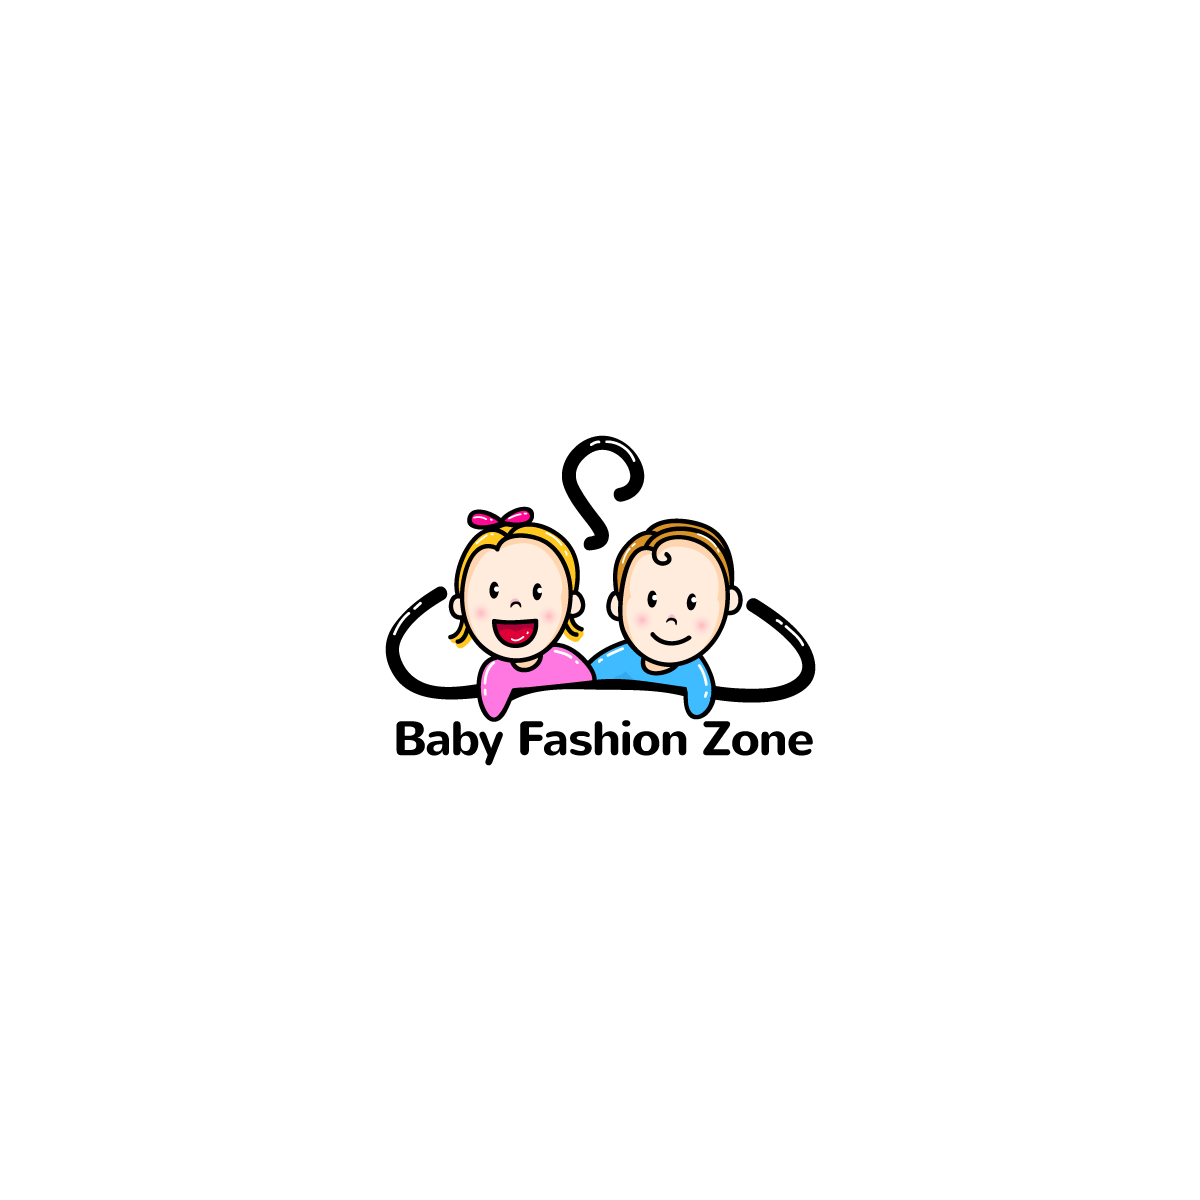 Modern Upmarket Fashion Logo Design For Baby Fashion Zone By Jamex Creative Solution Design 12828178